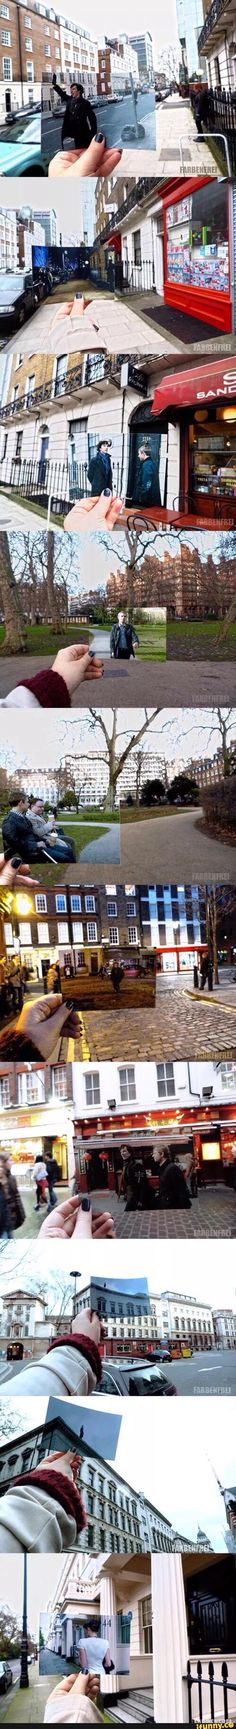 I love these! But the ones with Sherlock on the building just made my heart broke